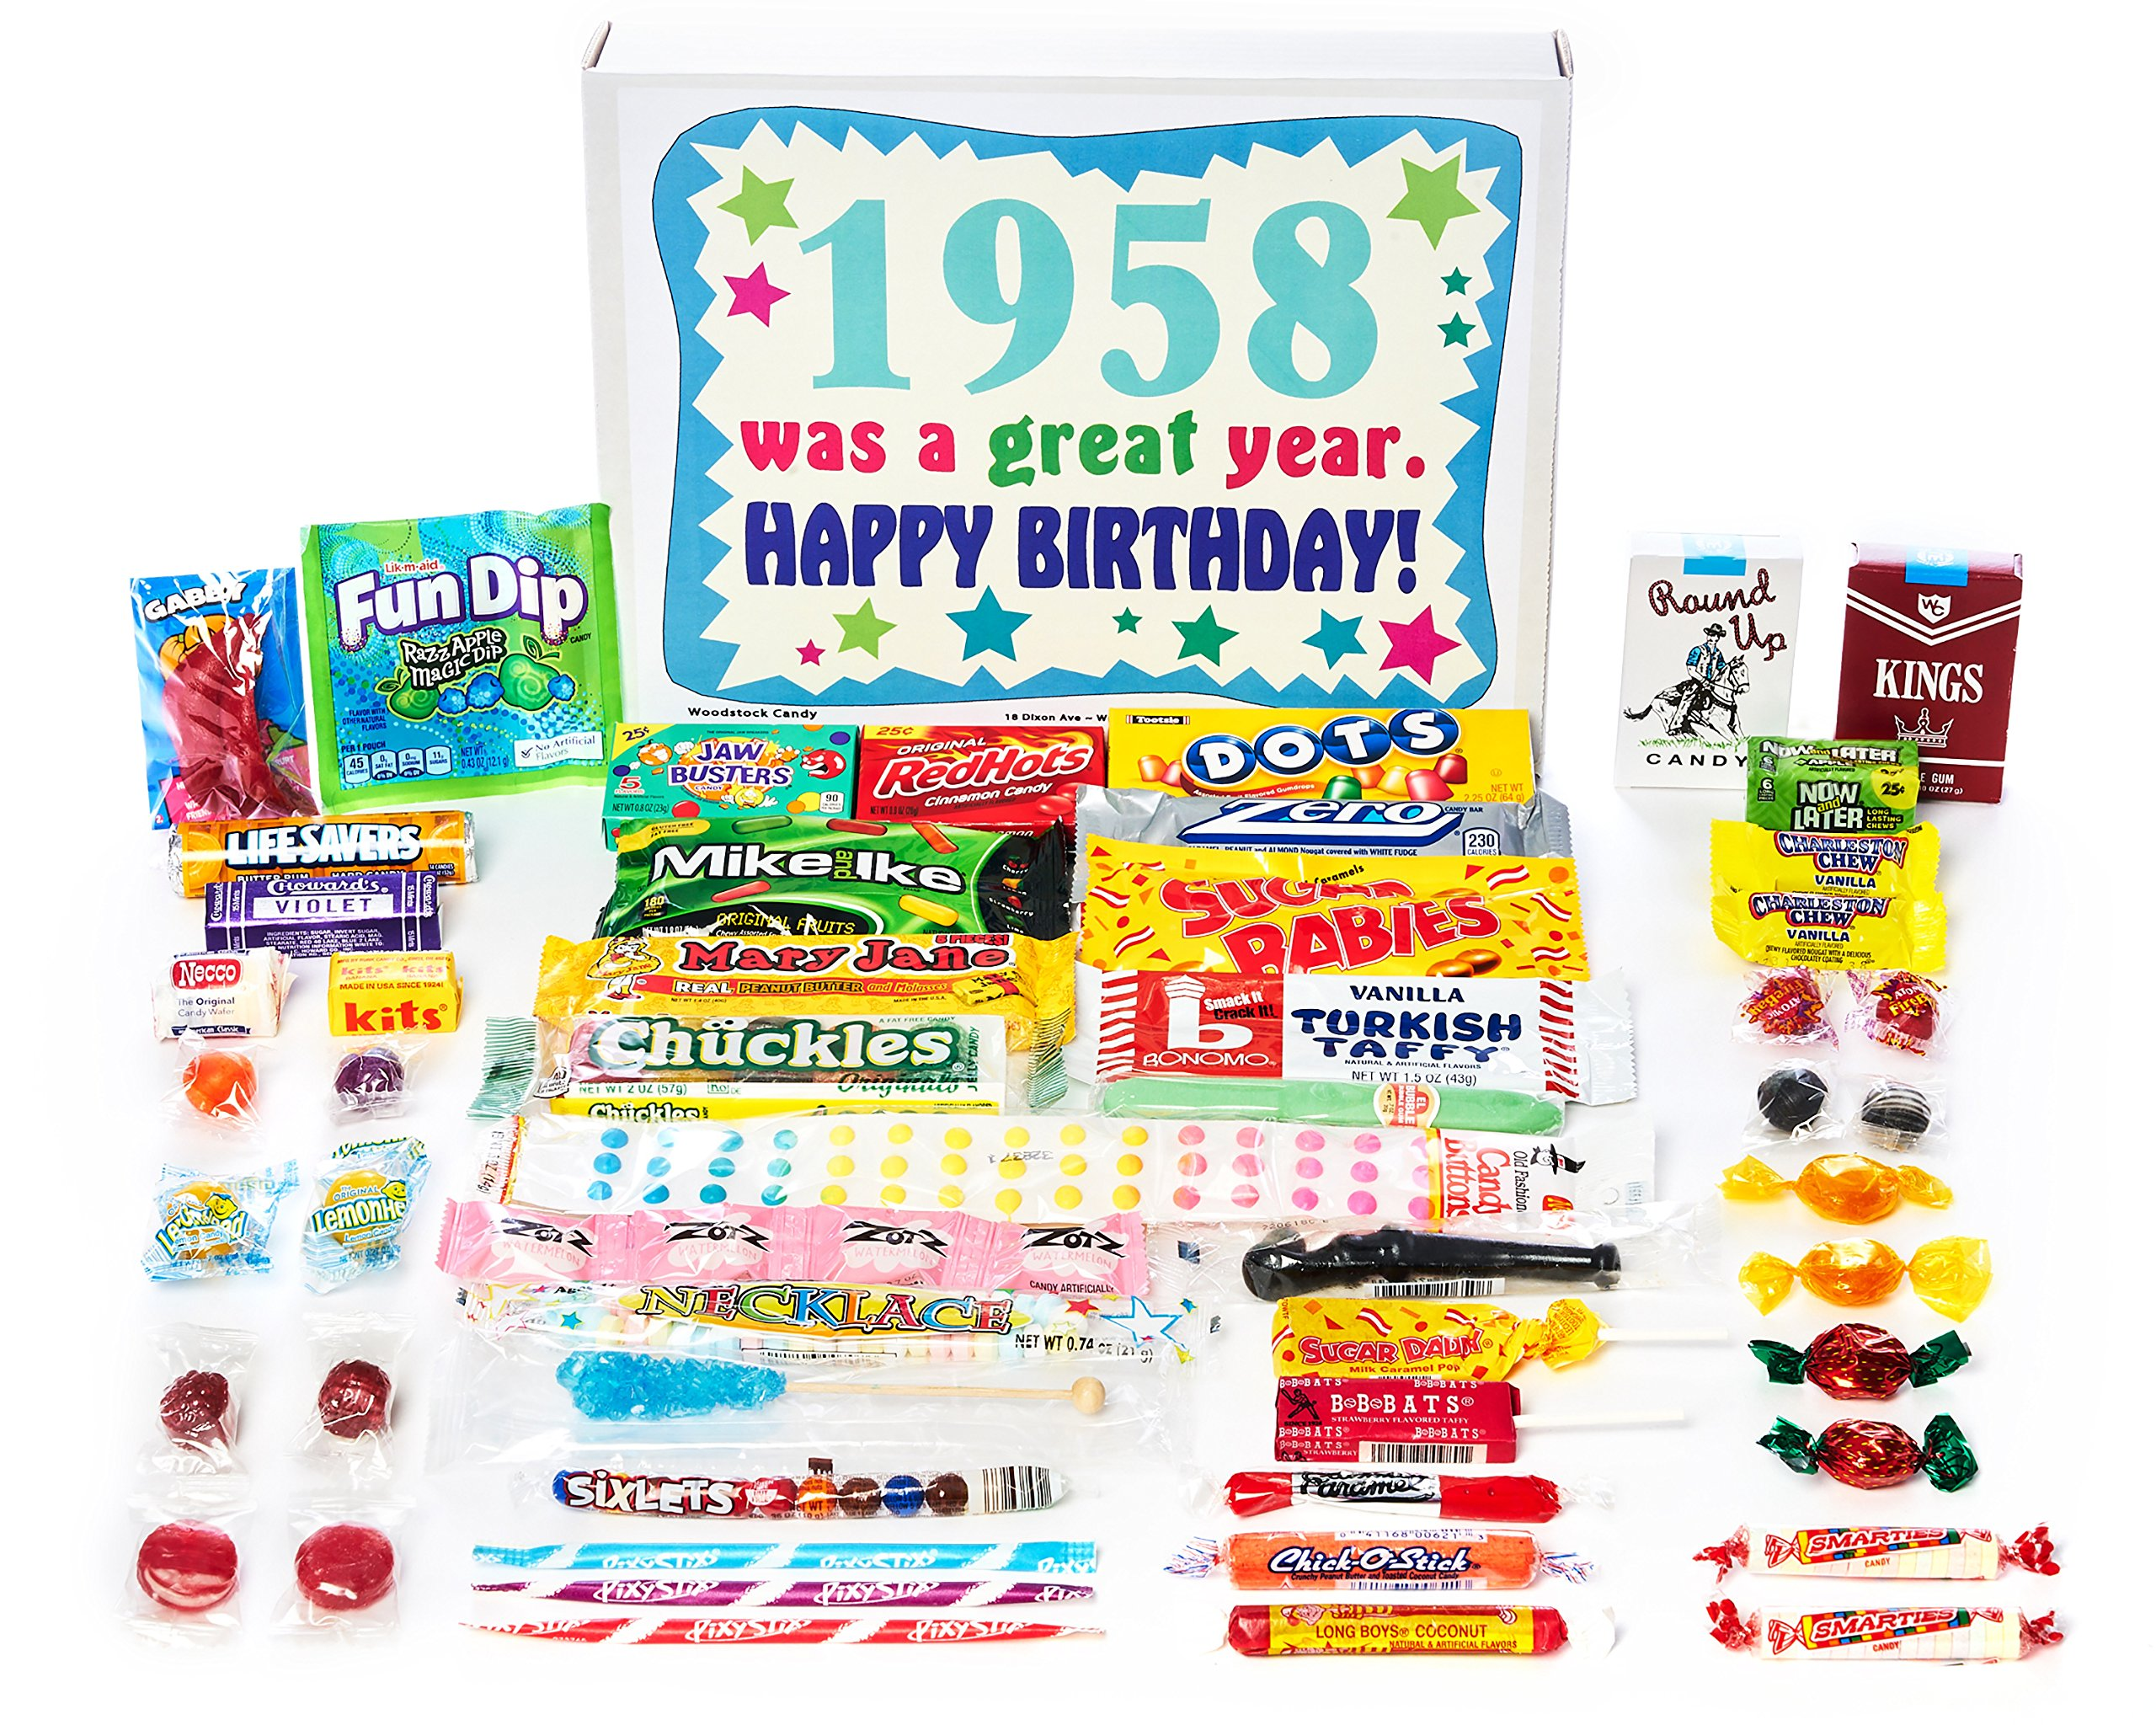 Woodstock Candy ~ 1958 61st Birthday Gift Box Vintage Nostalgic Candy Assortment from Childhood for 61 Old Man or Woman Born 1958 by Woodstock Candy